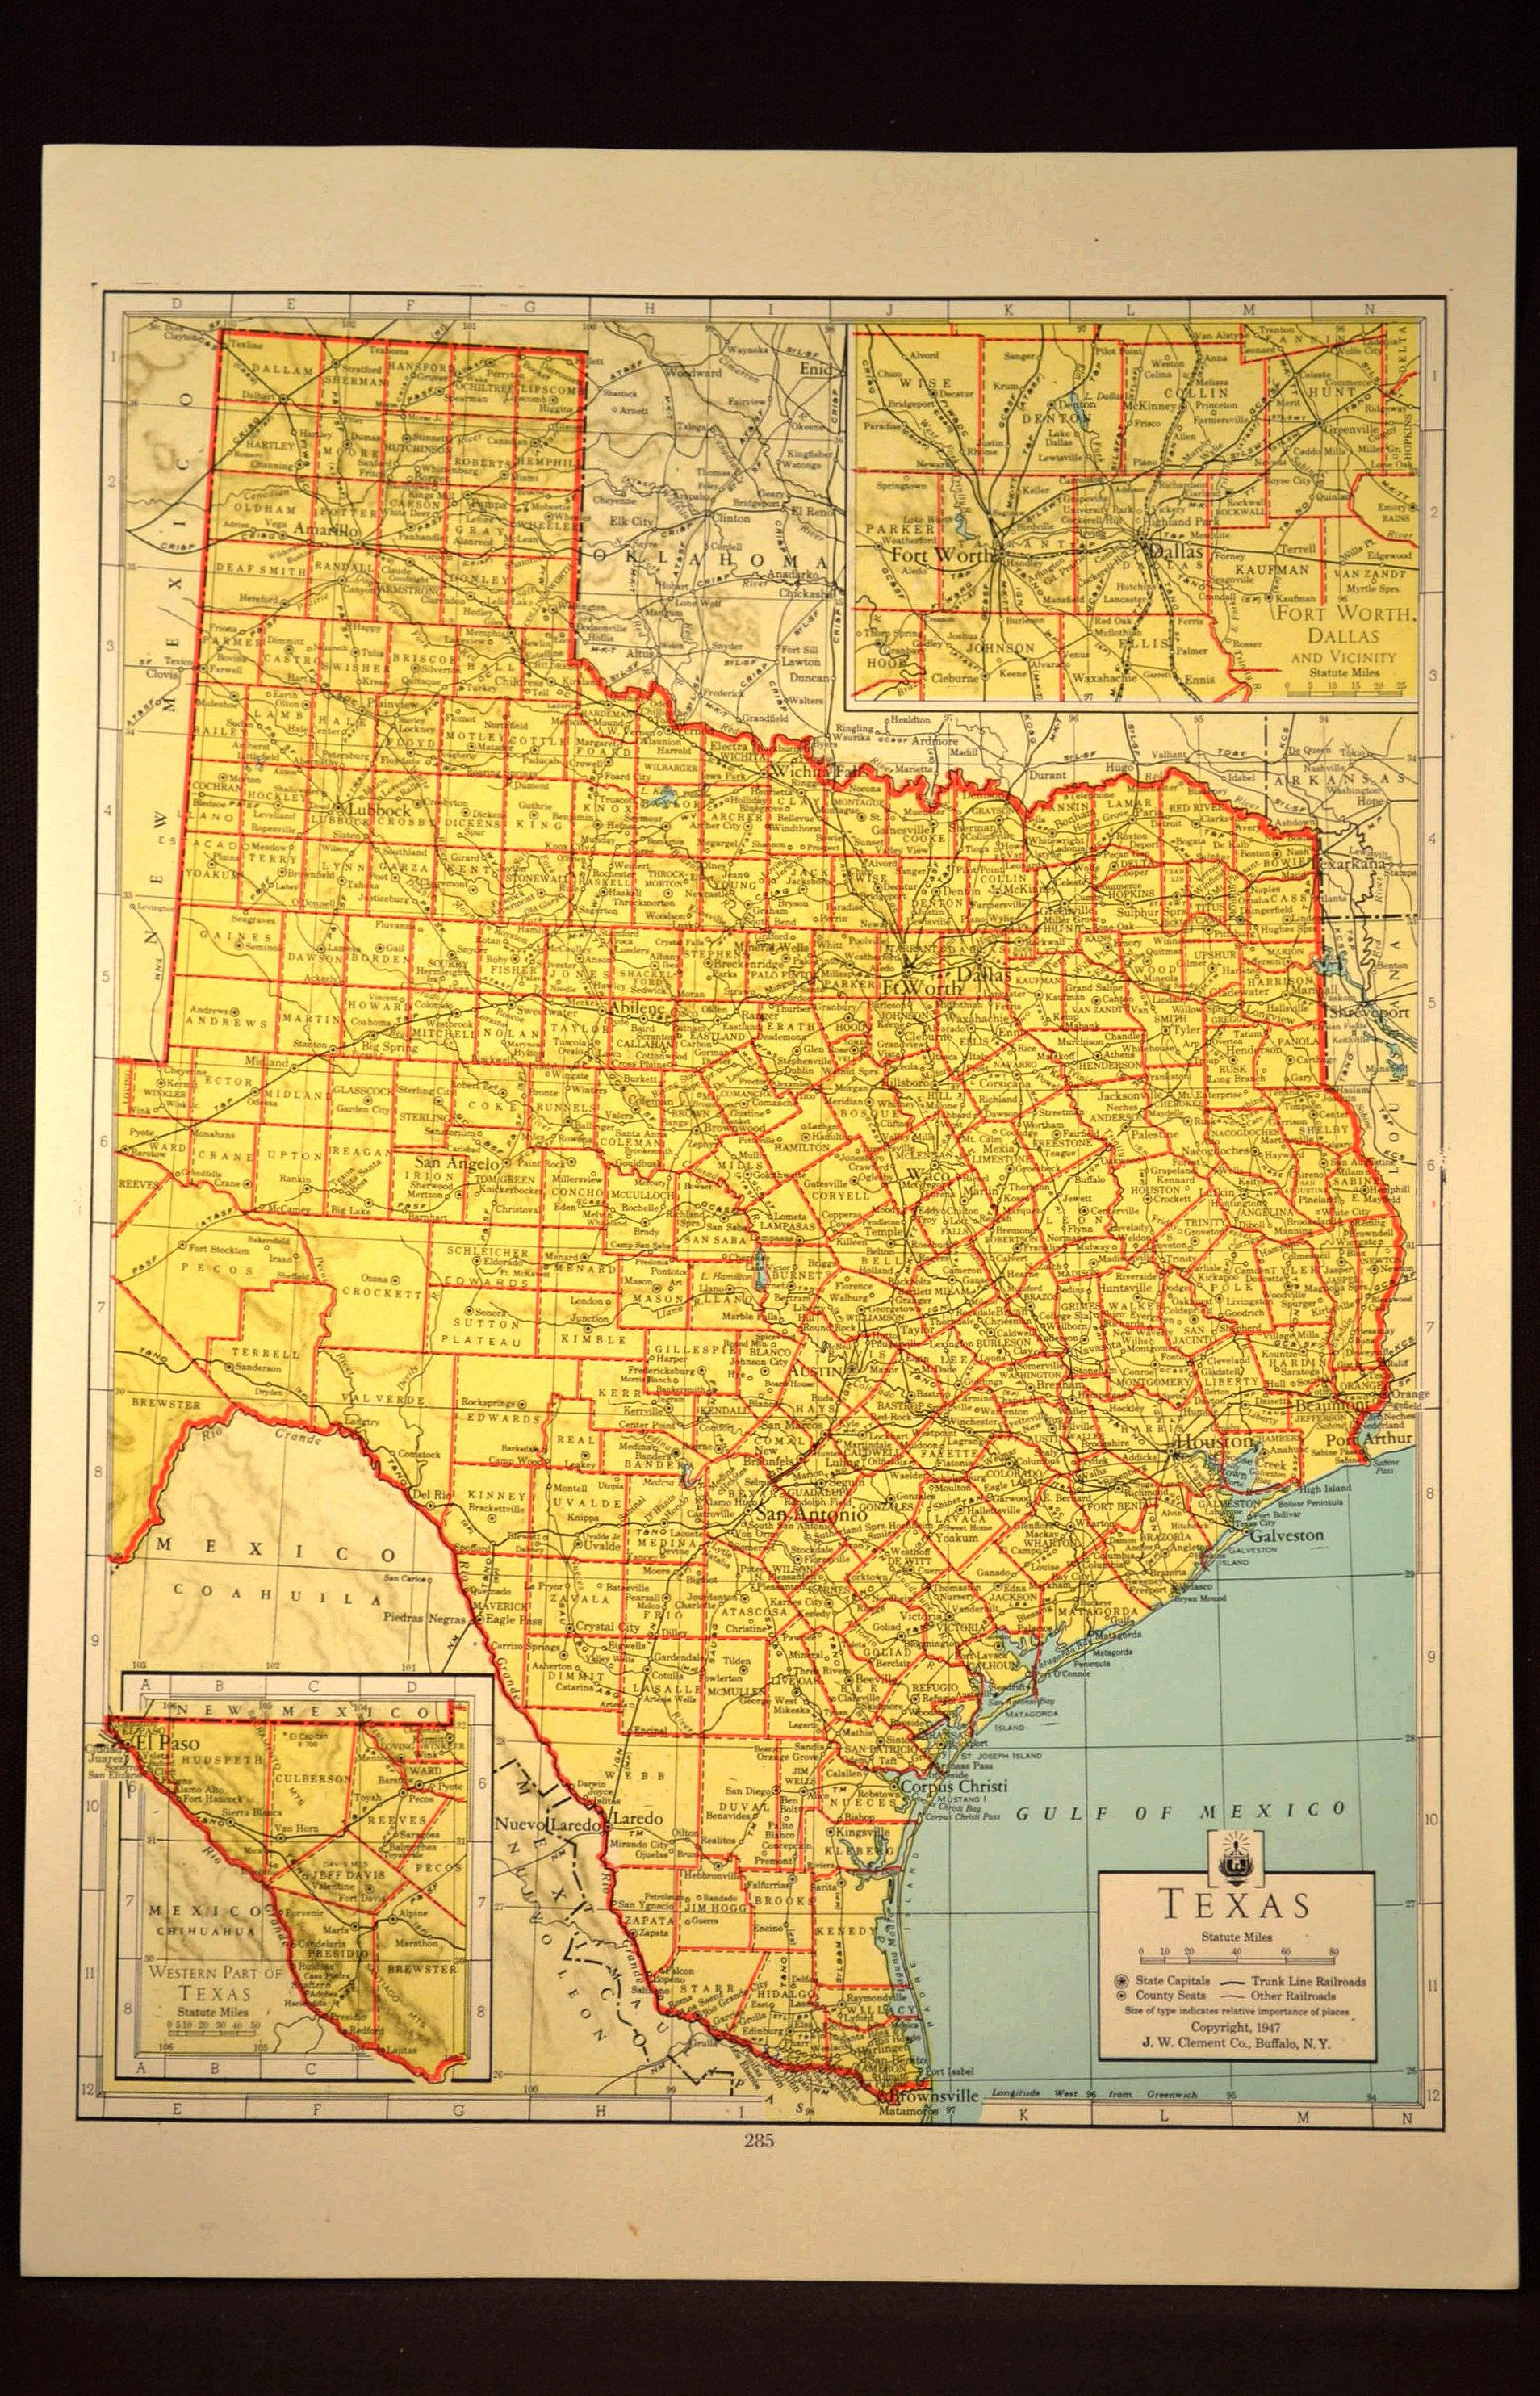 Texas Map Of Texas Wall Art Colored Colorful Yellow Vintage Gift - Map Of Texas Art